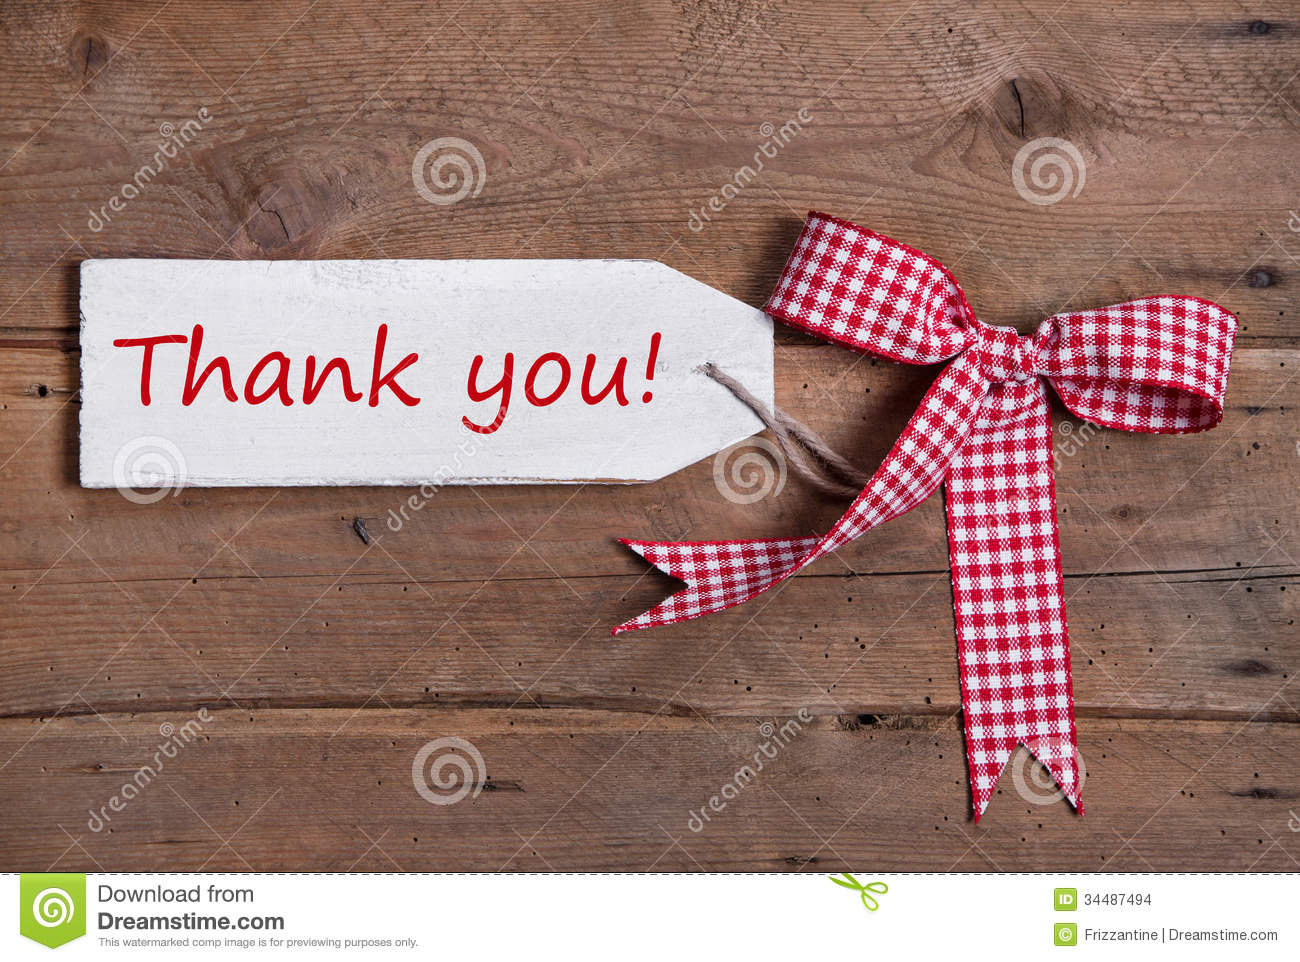 greeting card with thank you and a red checked ribbod